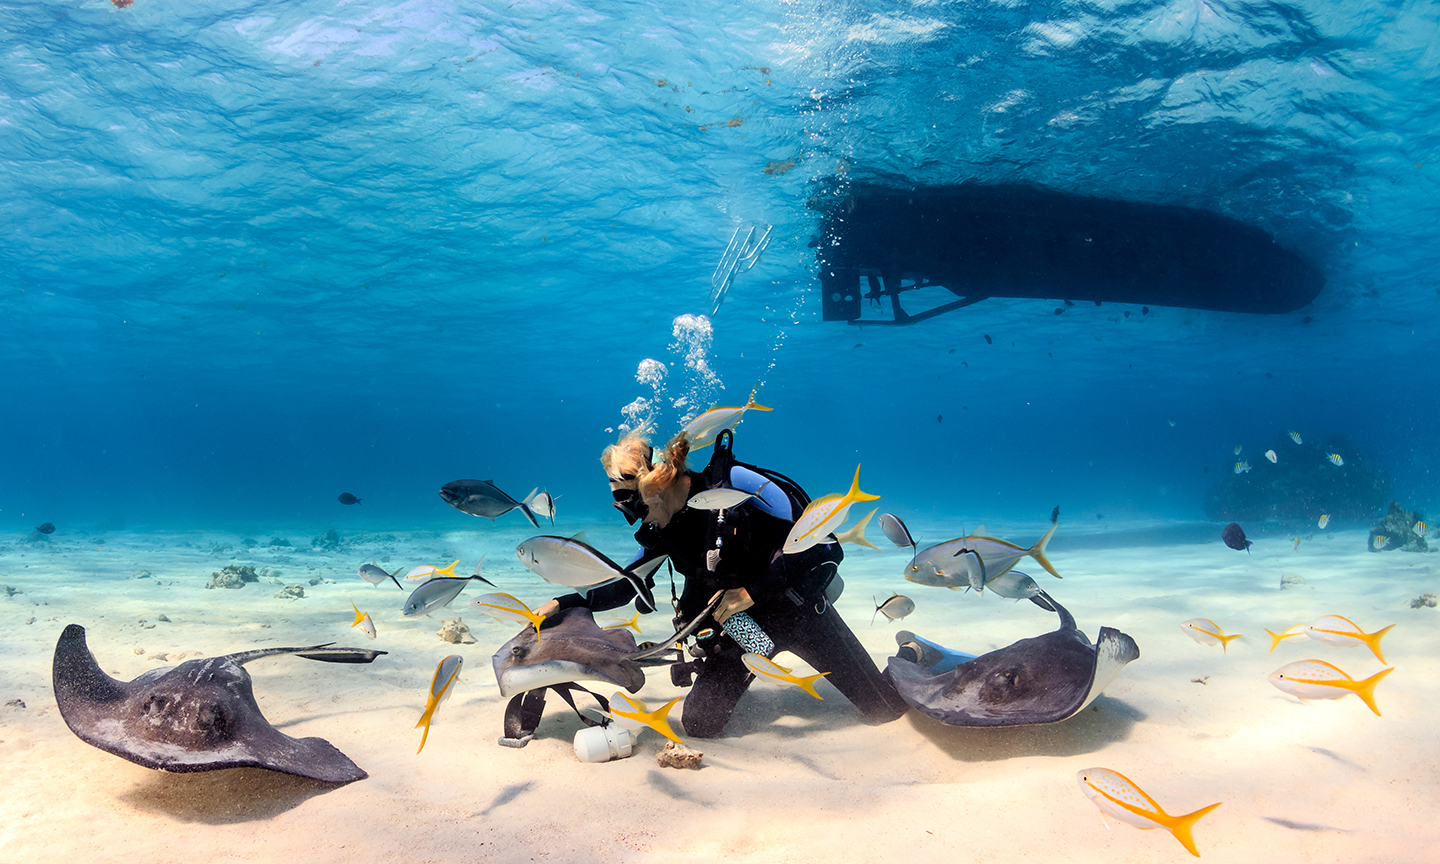 A scuba diver underwater stroking a stingray with yellowtail snapper fish swimming around him and the shadow of a boat above.